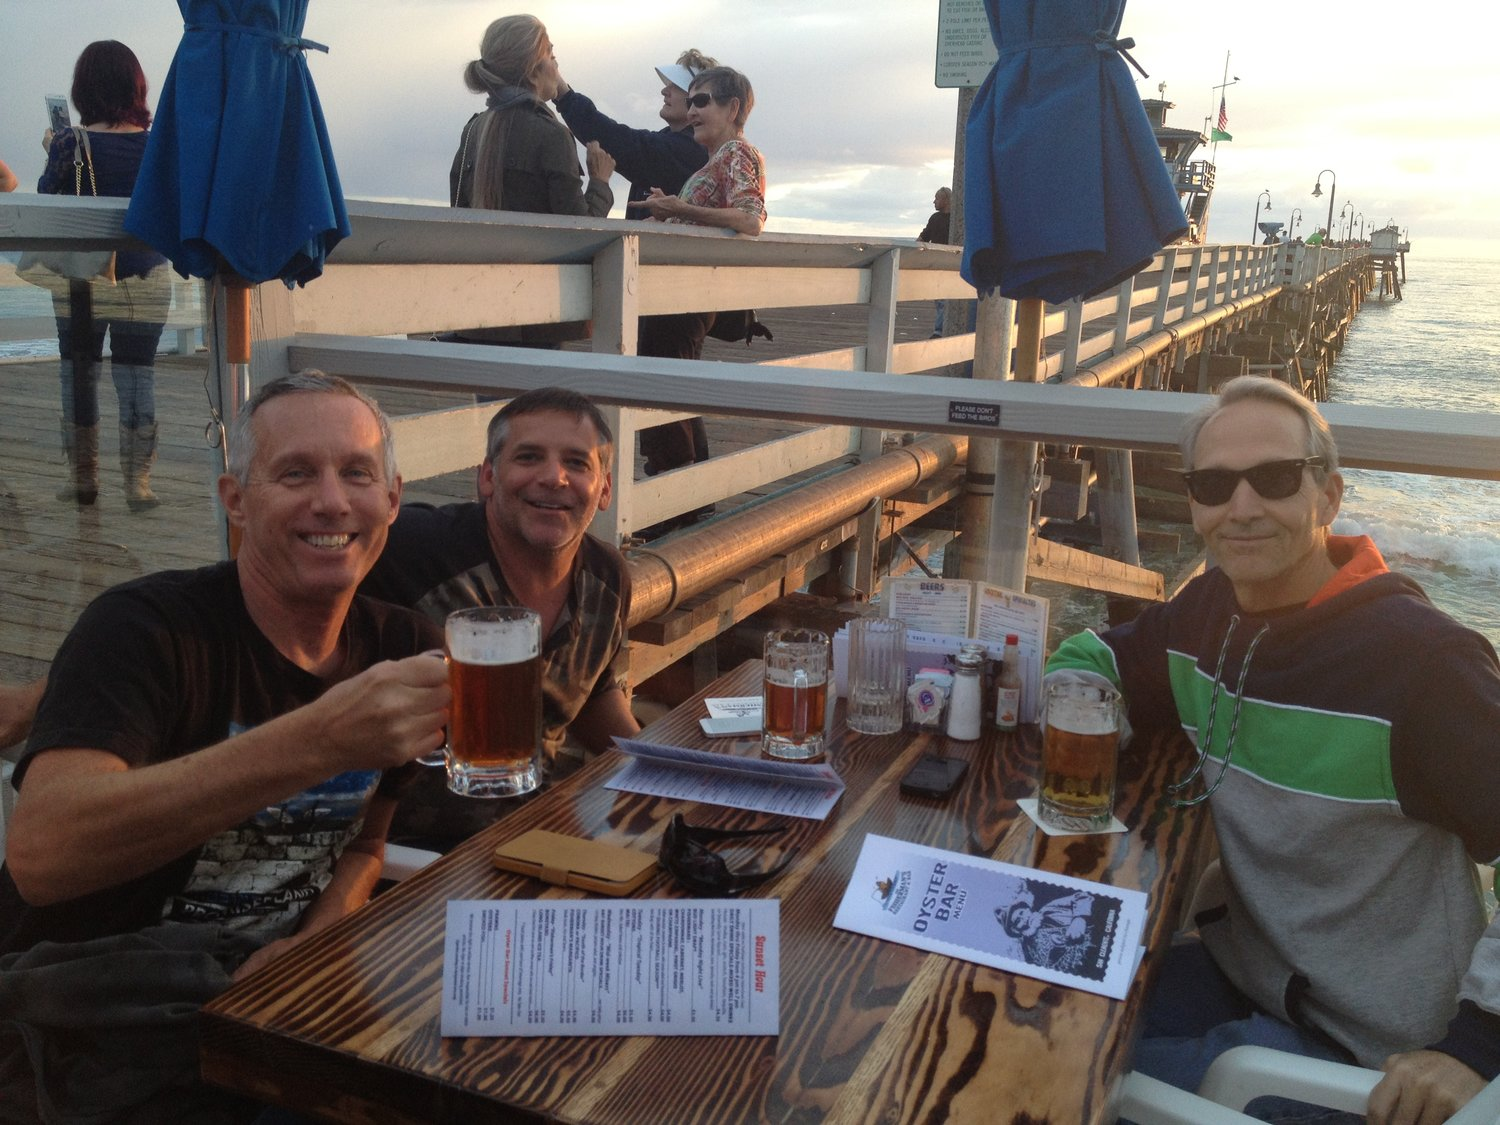 yes, there's even time for a beer and hamburger on the san clemente pier after a day of surfing + yoga!